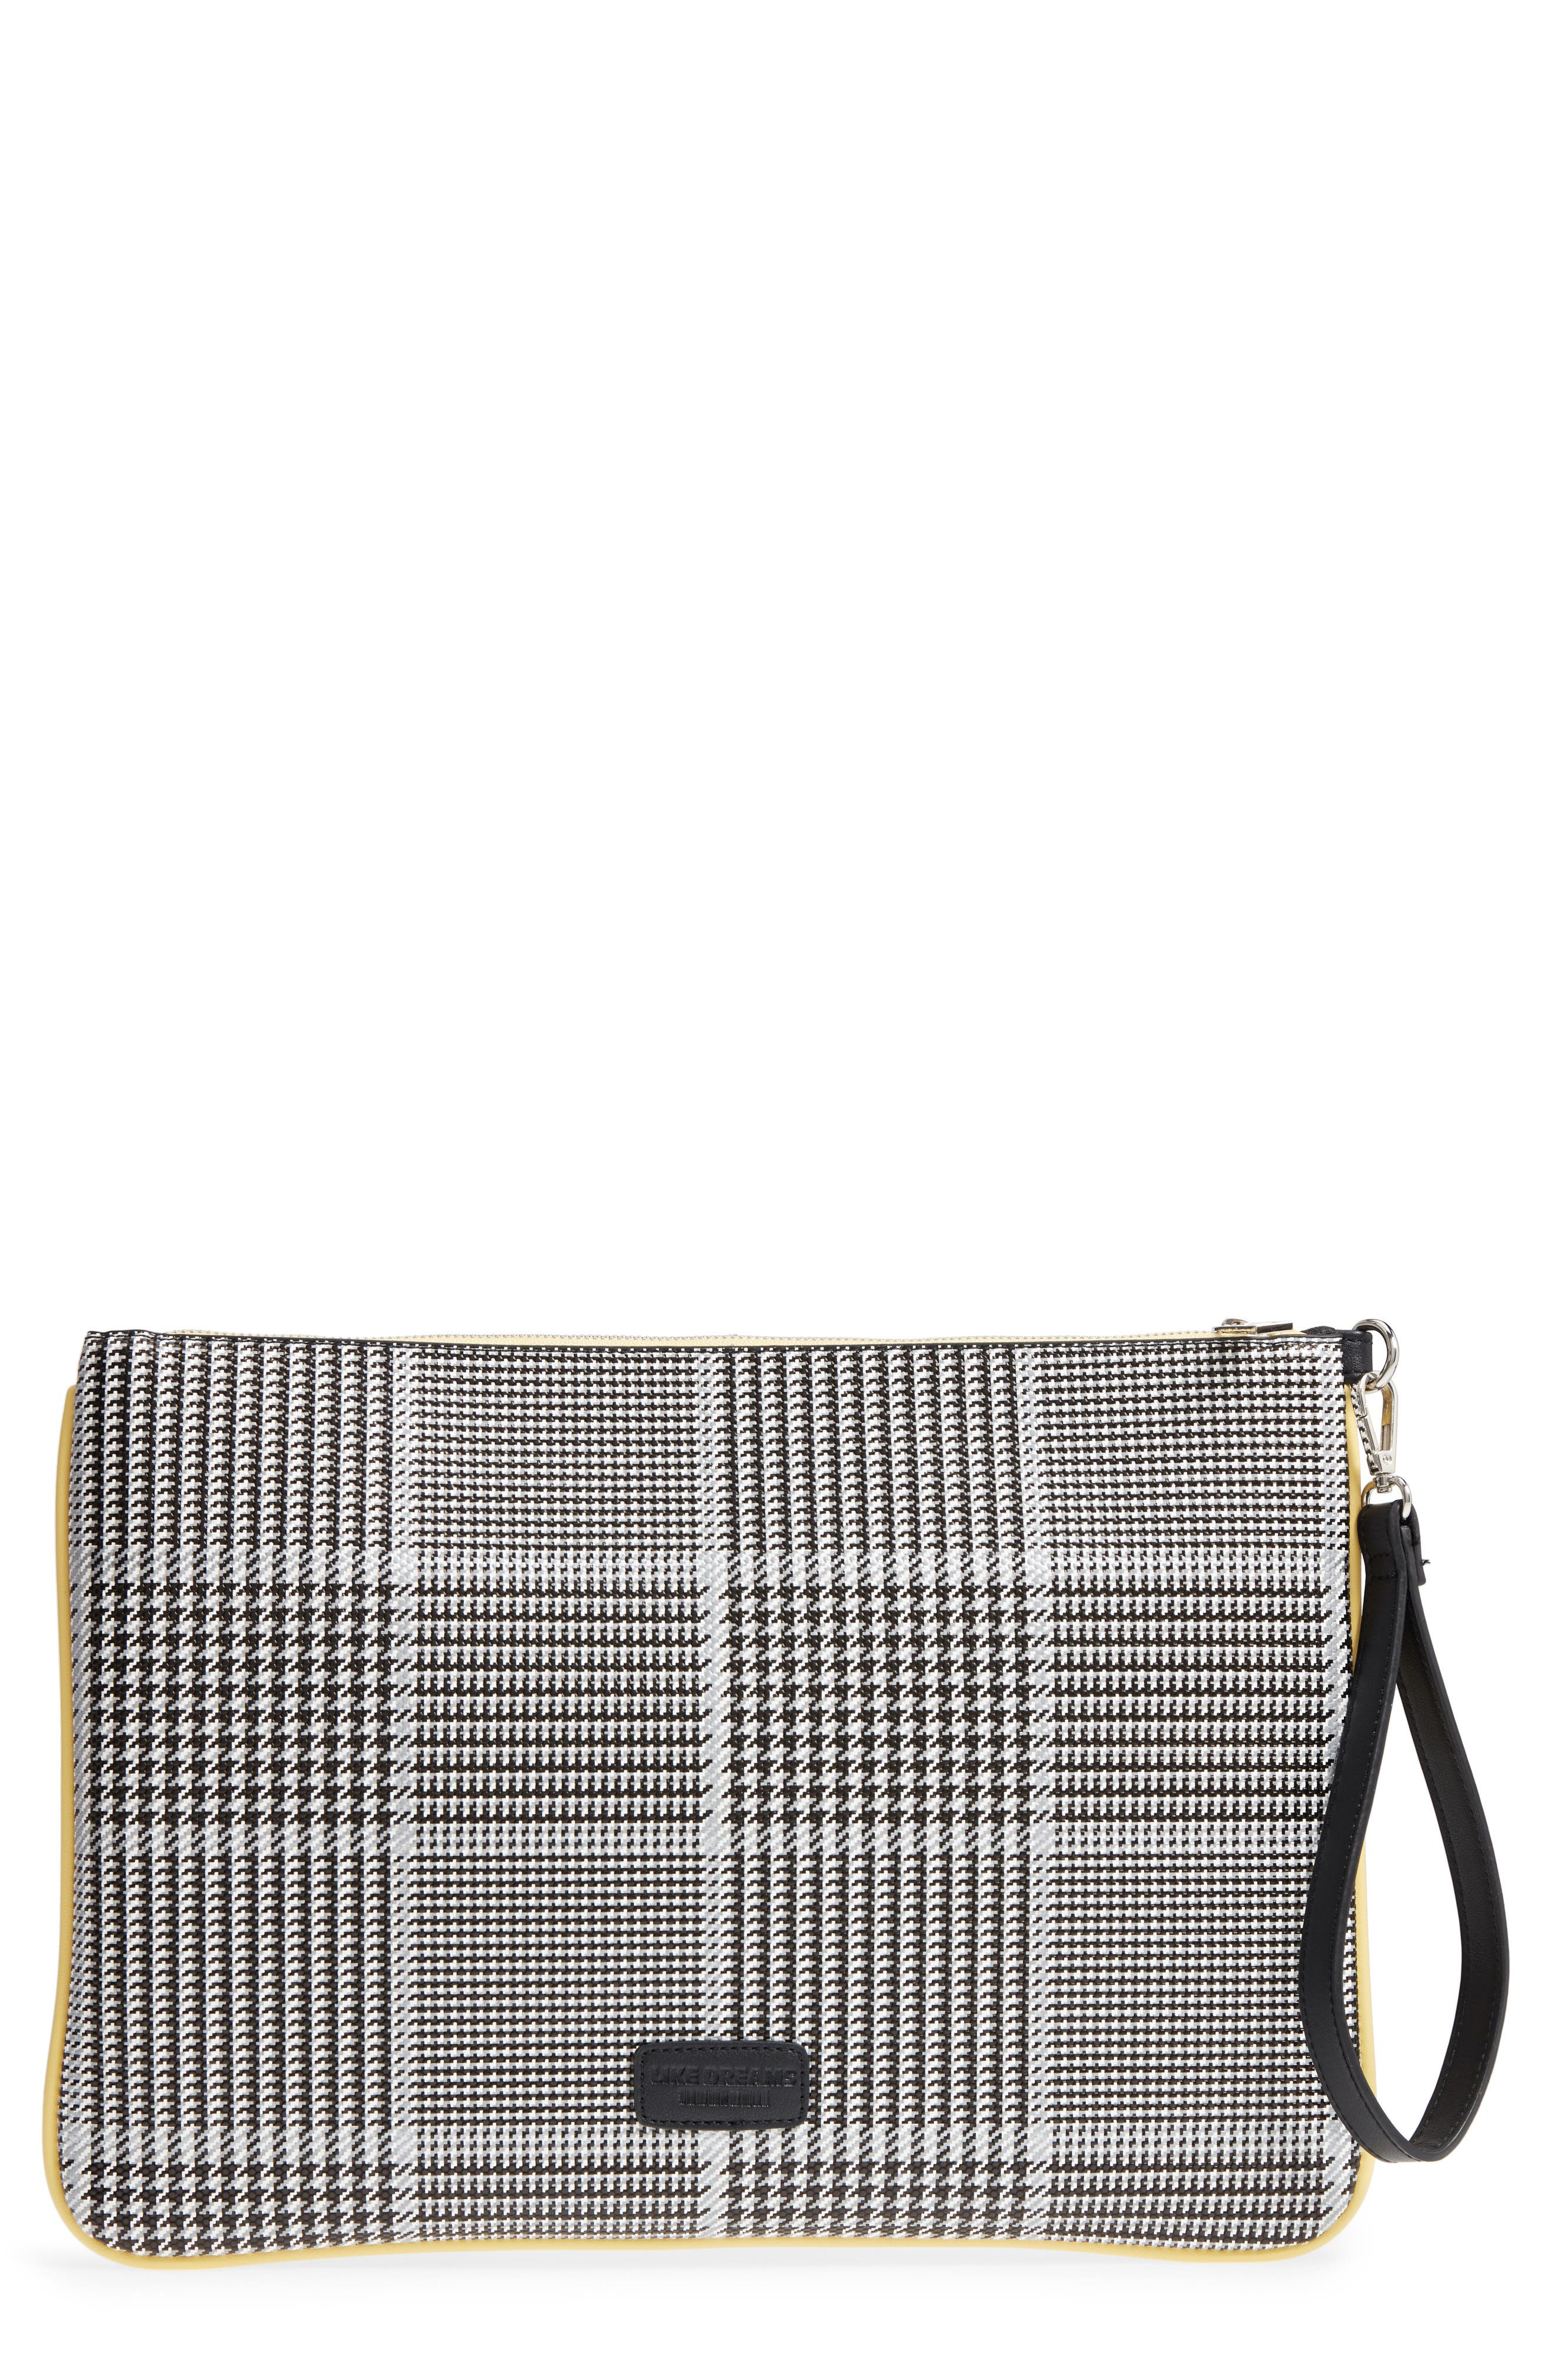 Prince of Wales Check Clutch,                             Main thumbnail 1, color,                             001